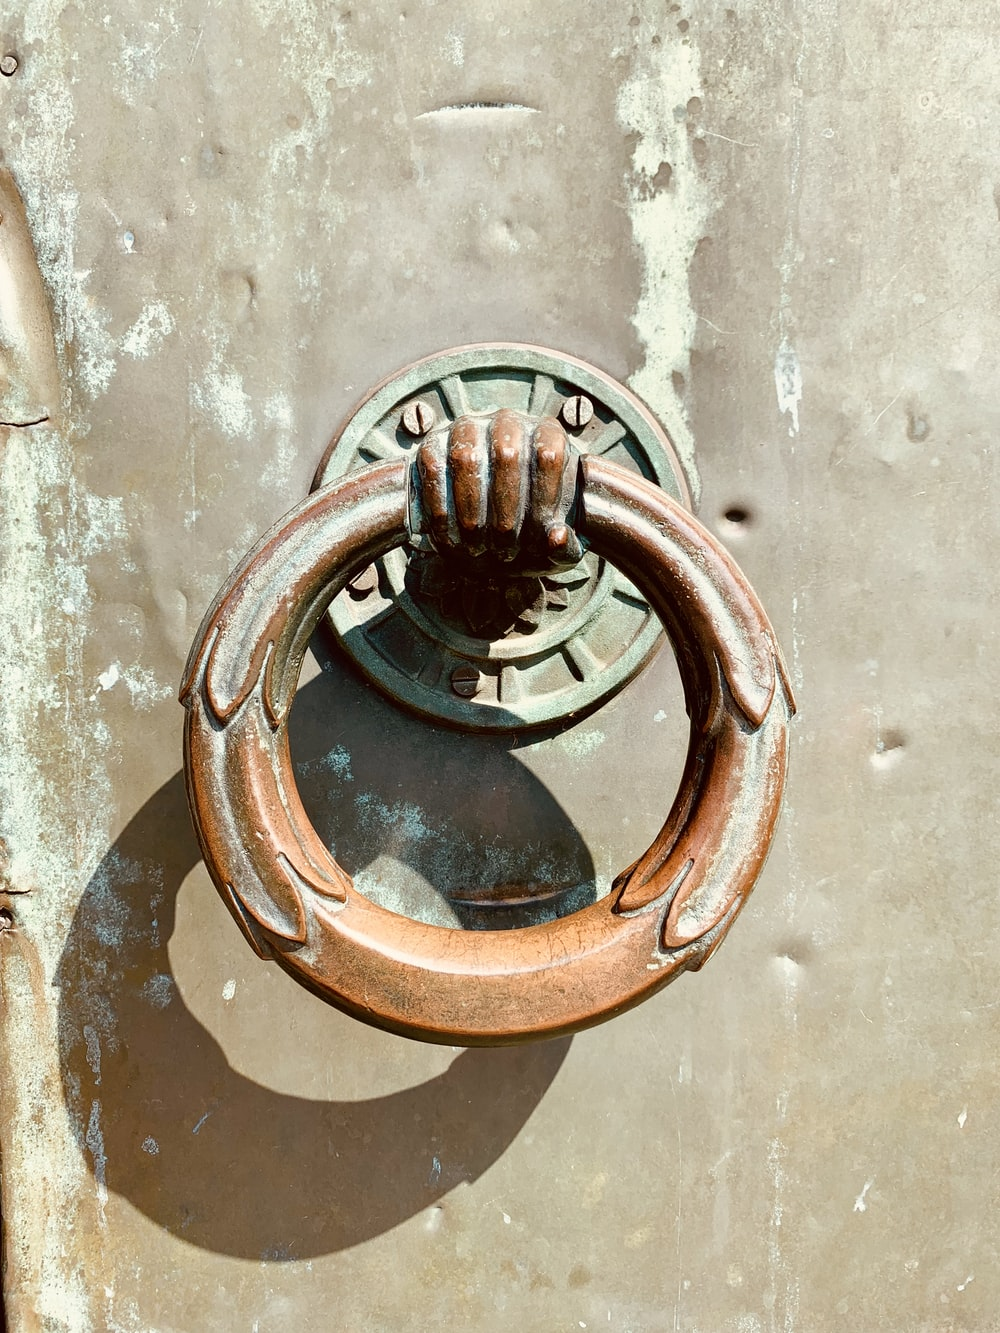 brown and green door knocker close-up photography